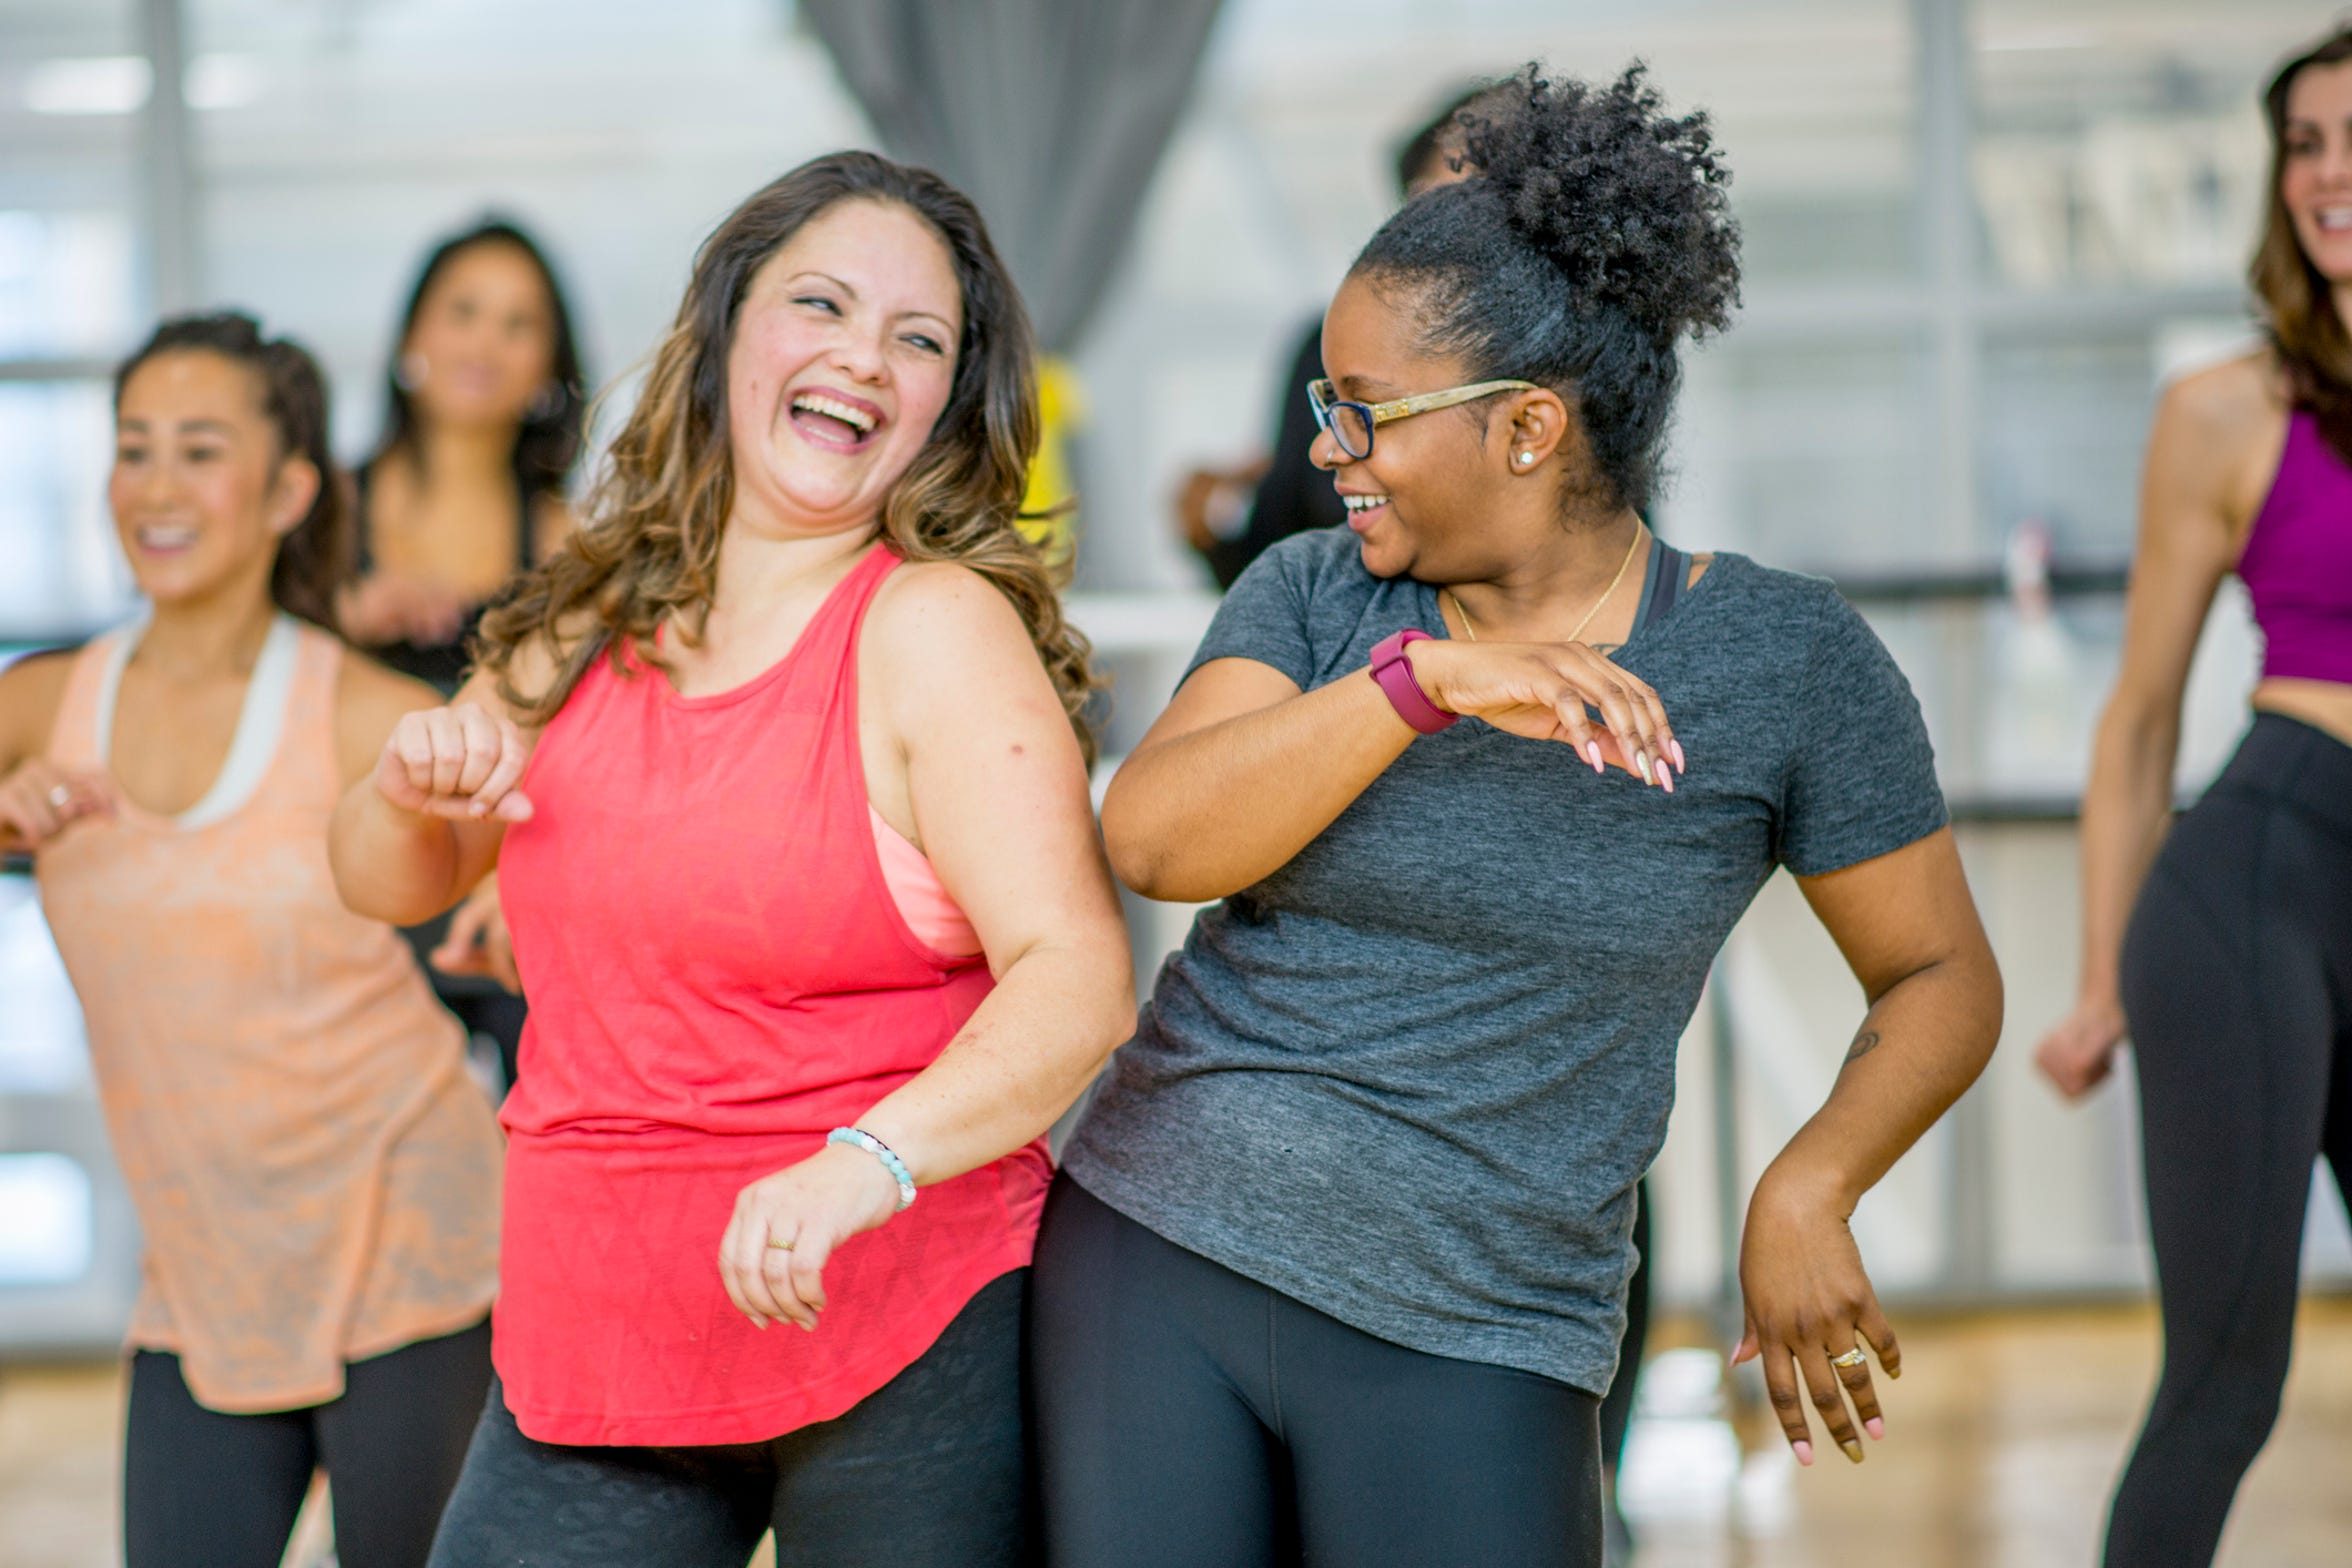 When it comes to exercise, it's not how far you go, how much you lift or how many calories you burn, it's how you feel afterwards, Dr. Jhansale says.